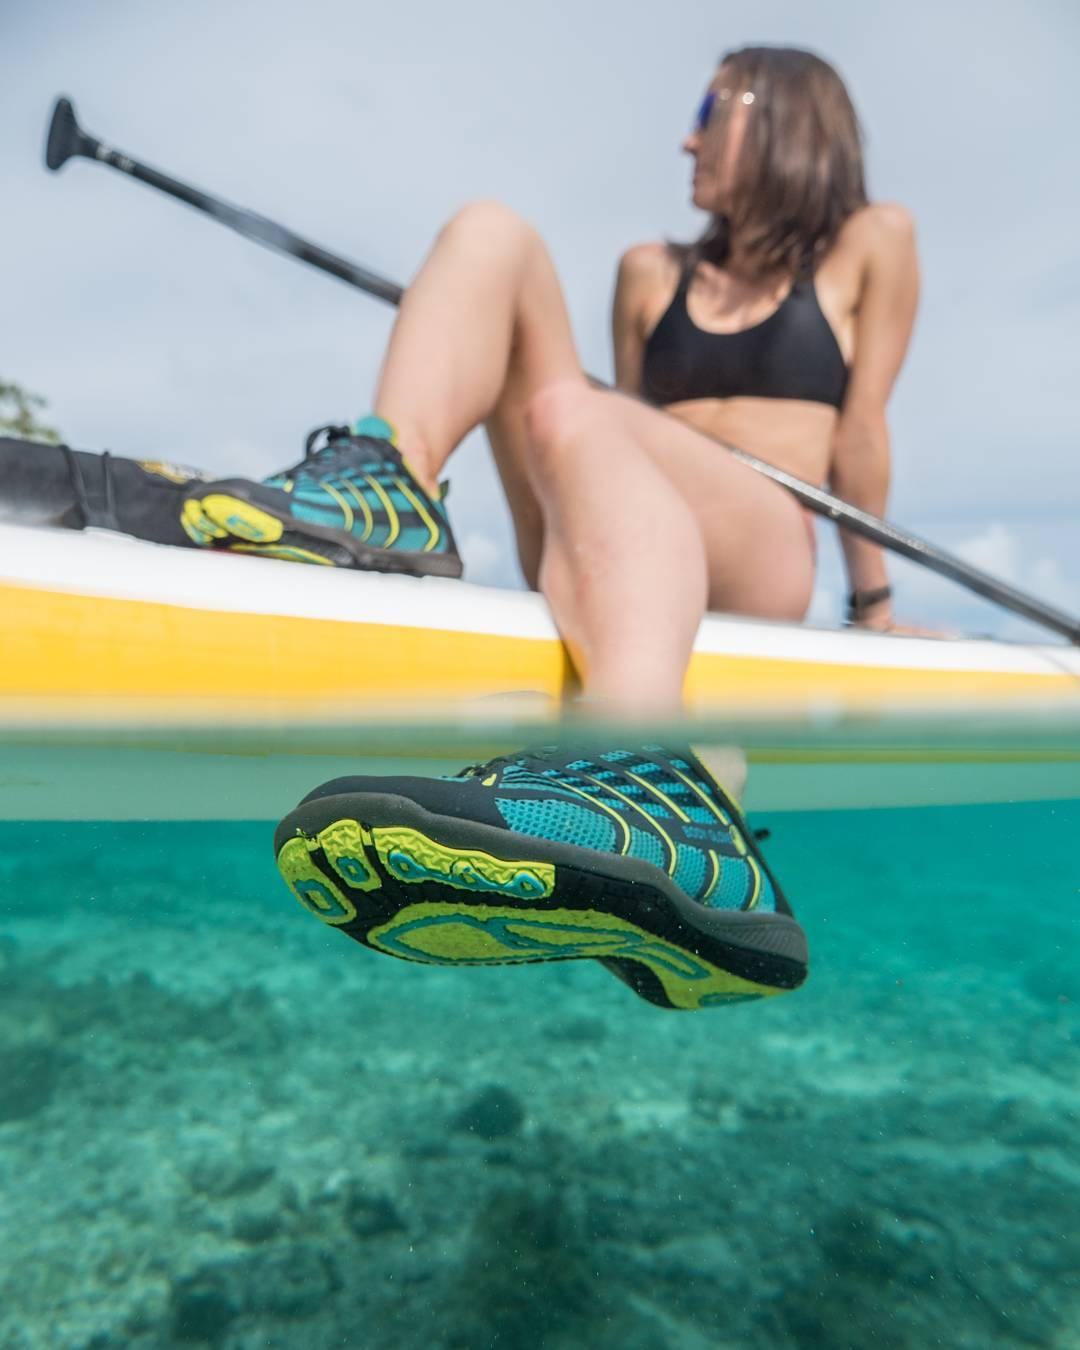 Sometimes you just have to stop and take it all in. #dynamorapid #bodyglovefootwear #allthingswater